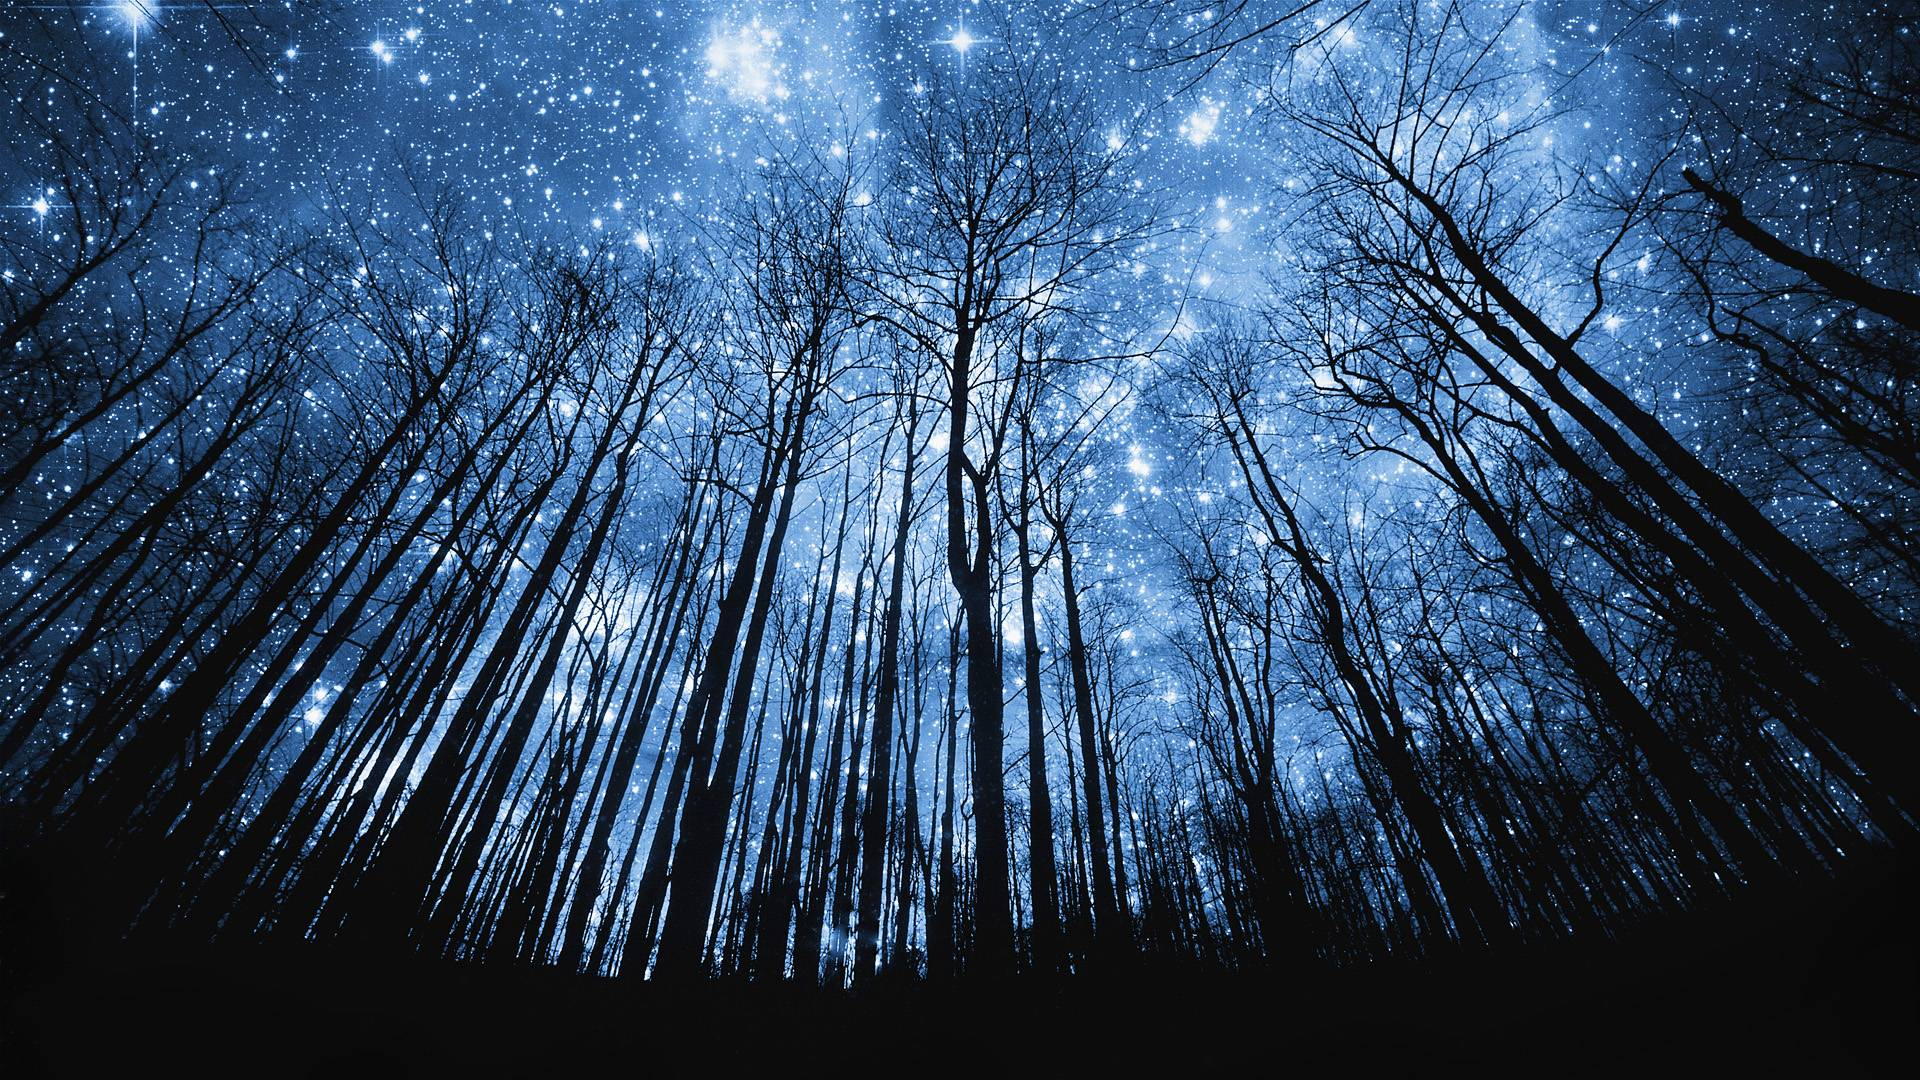 Tree Silhouette Against Starry Night Sky, HQ Backgrounds